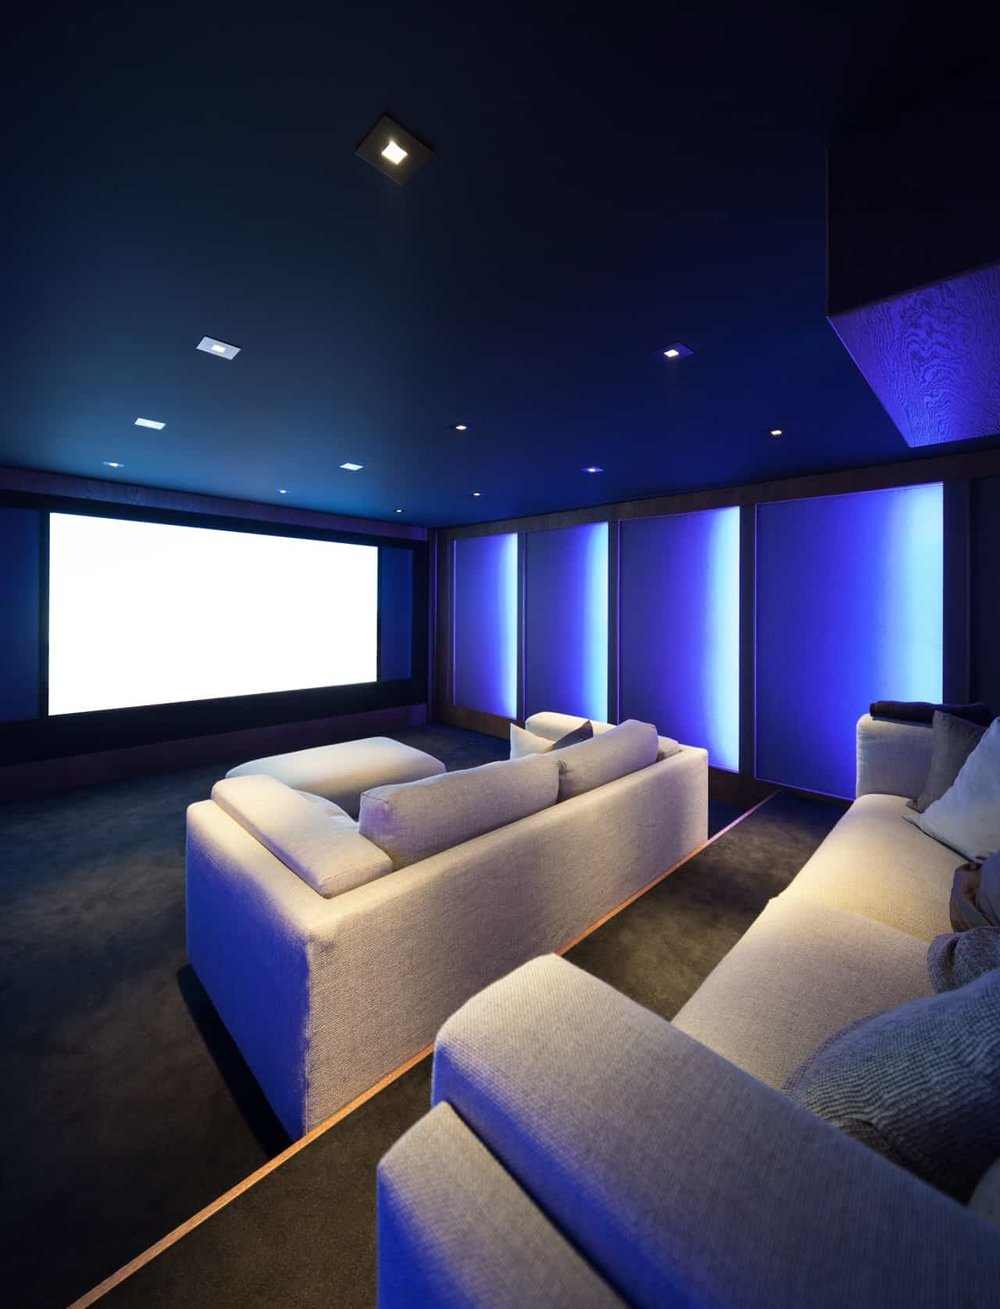 Home-theater-interior.jpg